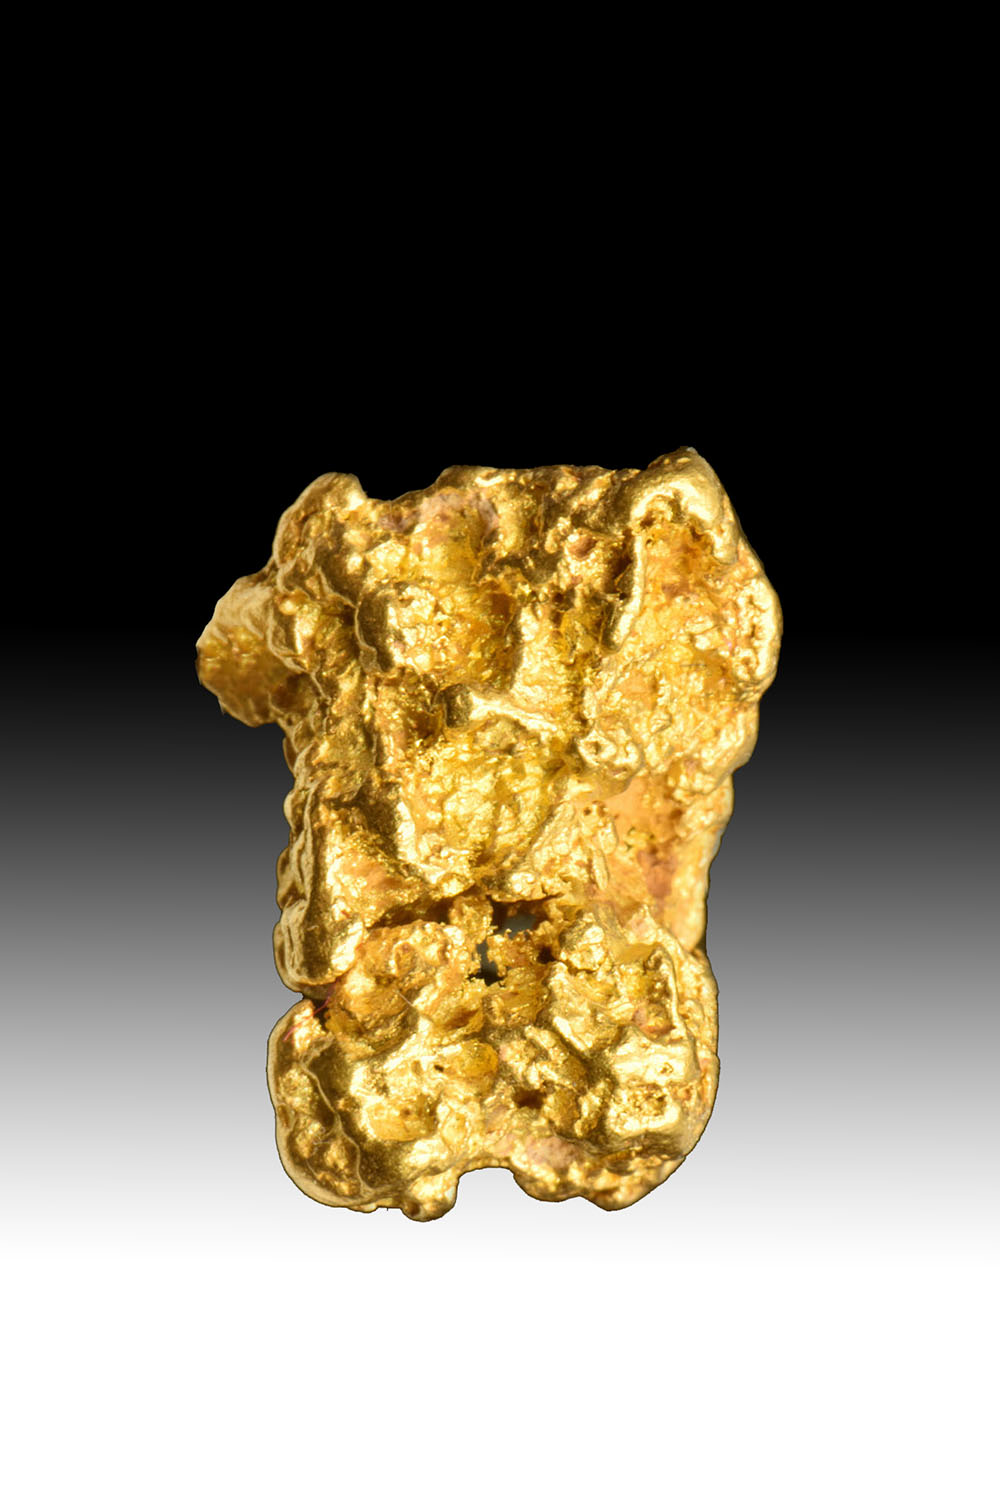 Shiny, High Purity Jewlery/Investment Grade Gold Nugget